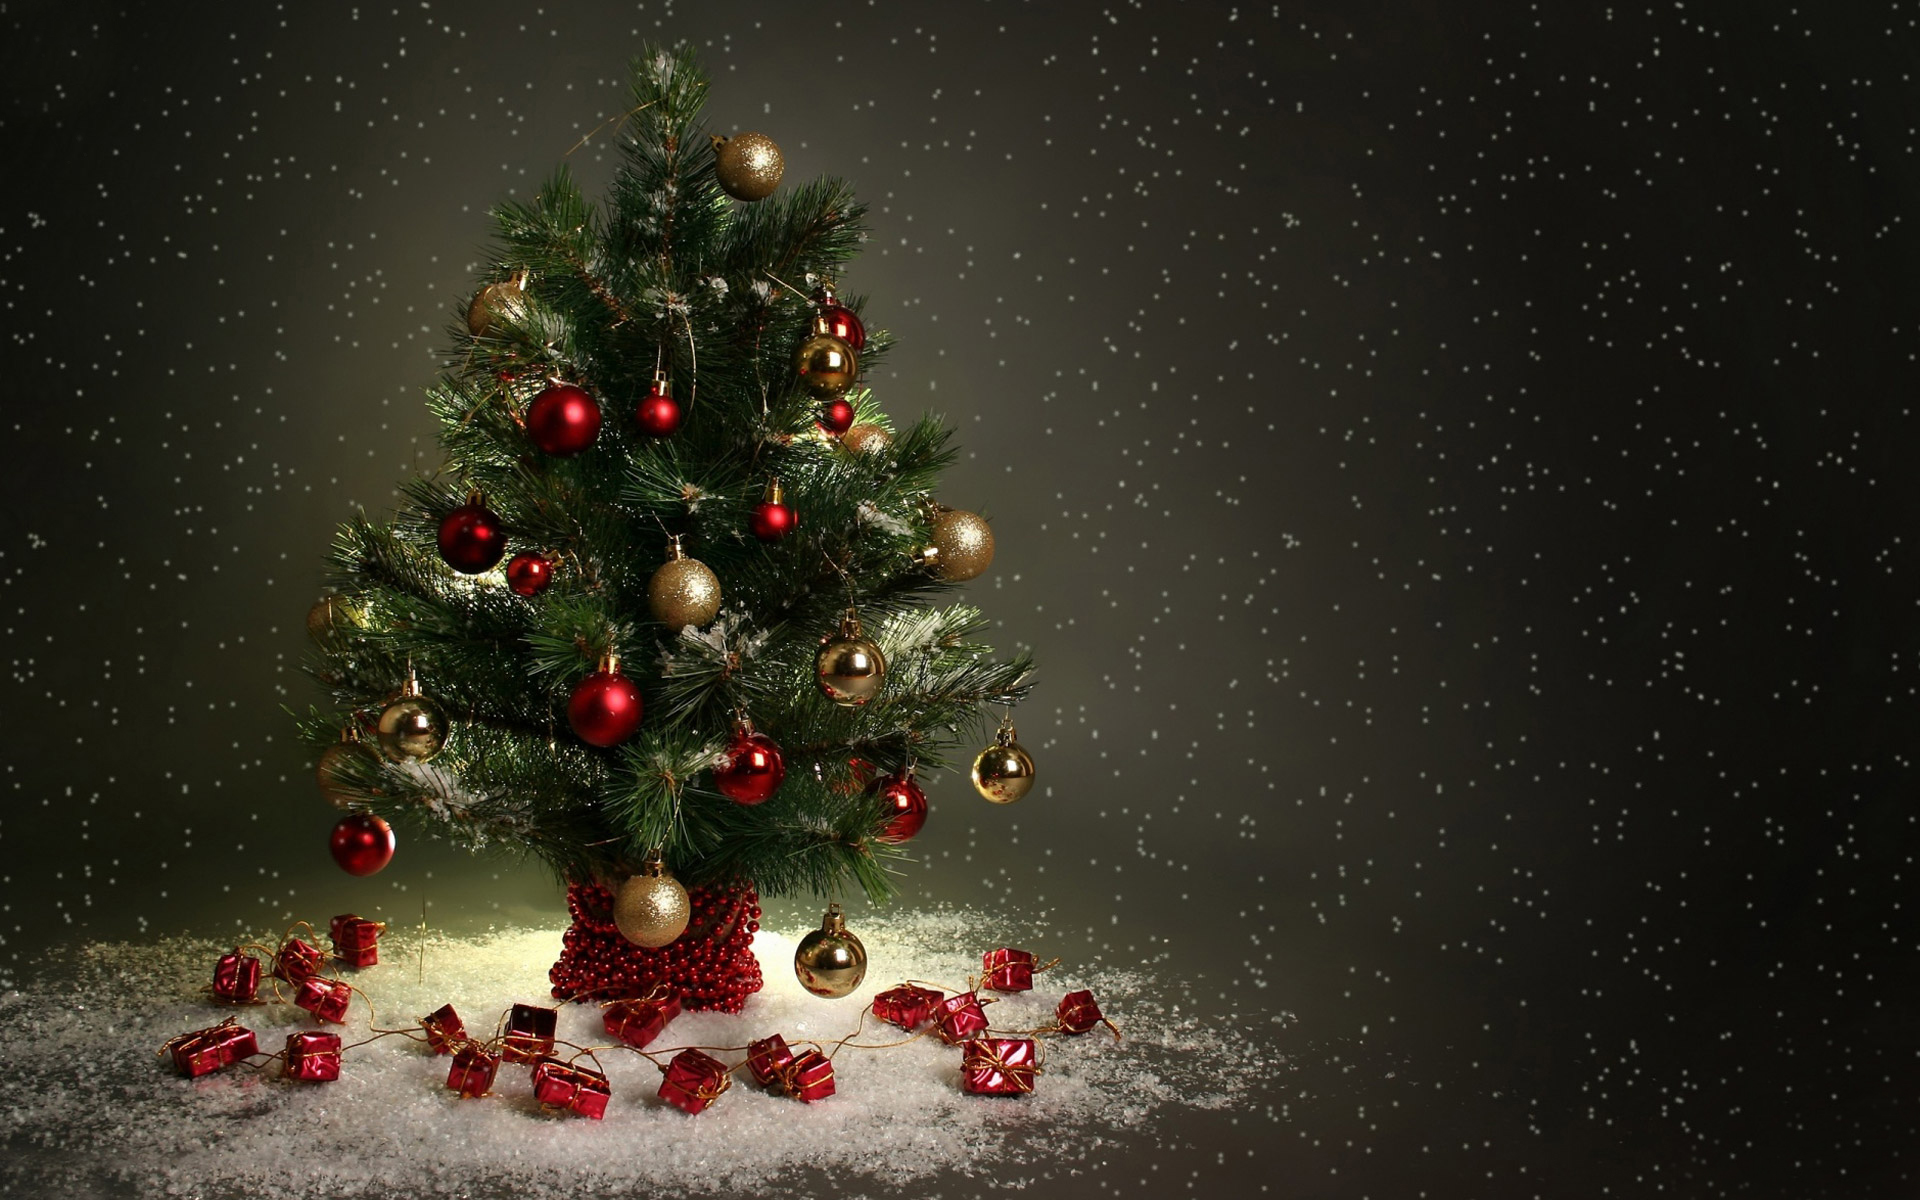 Merry Christmas HD Wallpapers Image Greetings [ Download]] 1920x1200